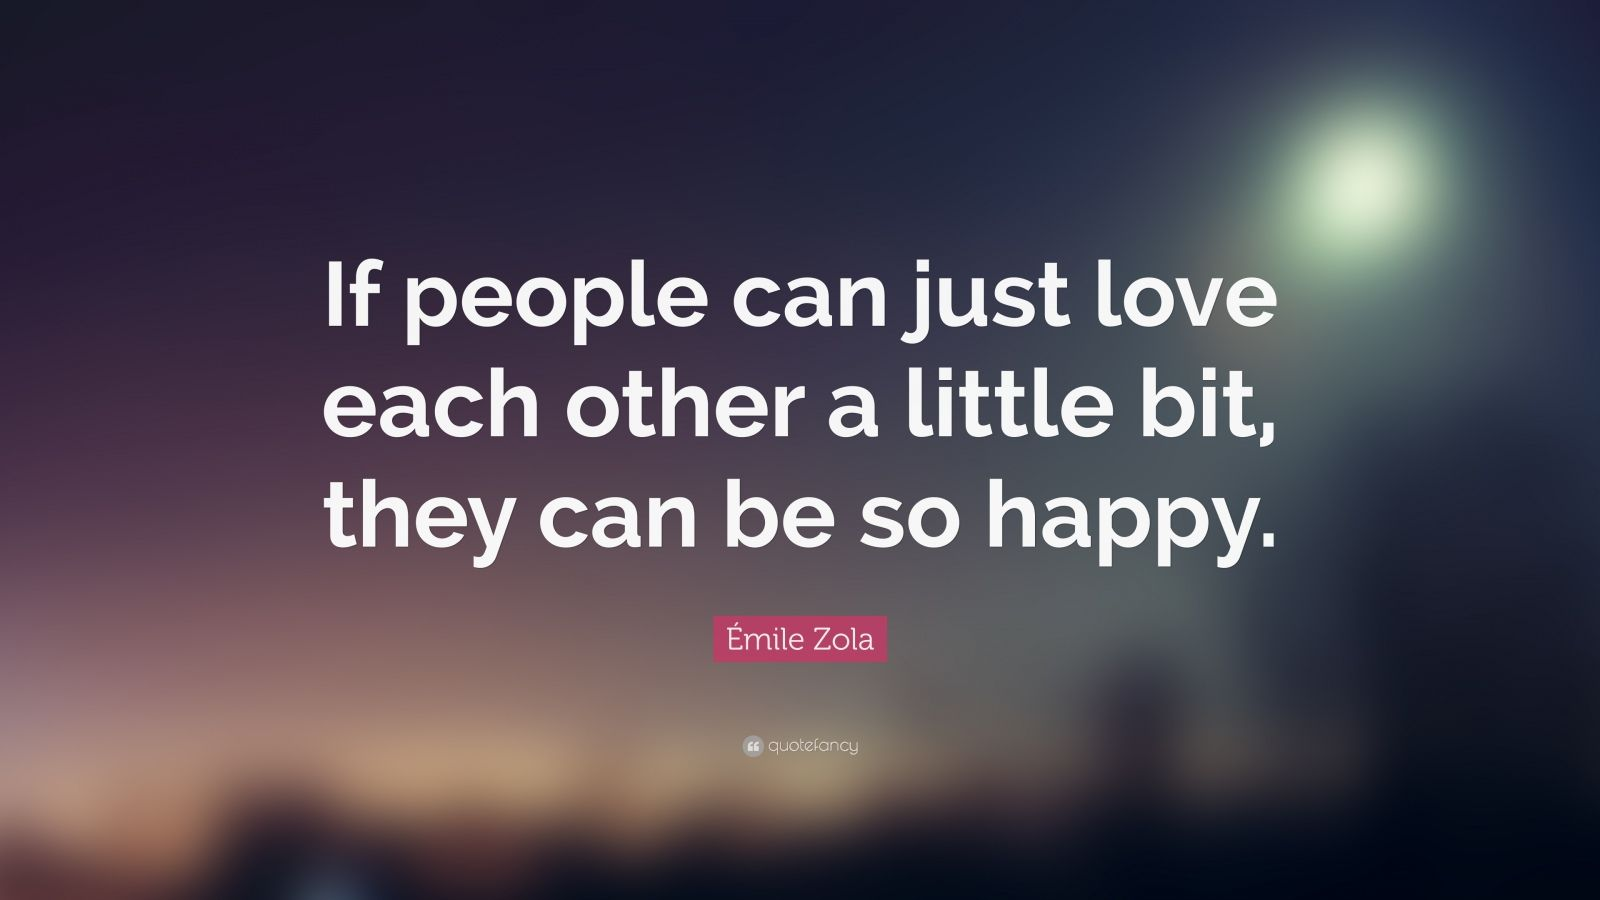 Wallpaper Love Each Other : ?mile Zola Quote: ?If people can just love each other a little bit, they can be so happy.? (6 ...